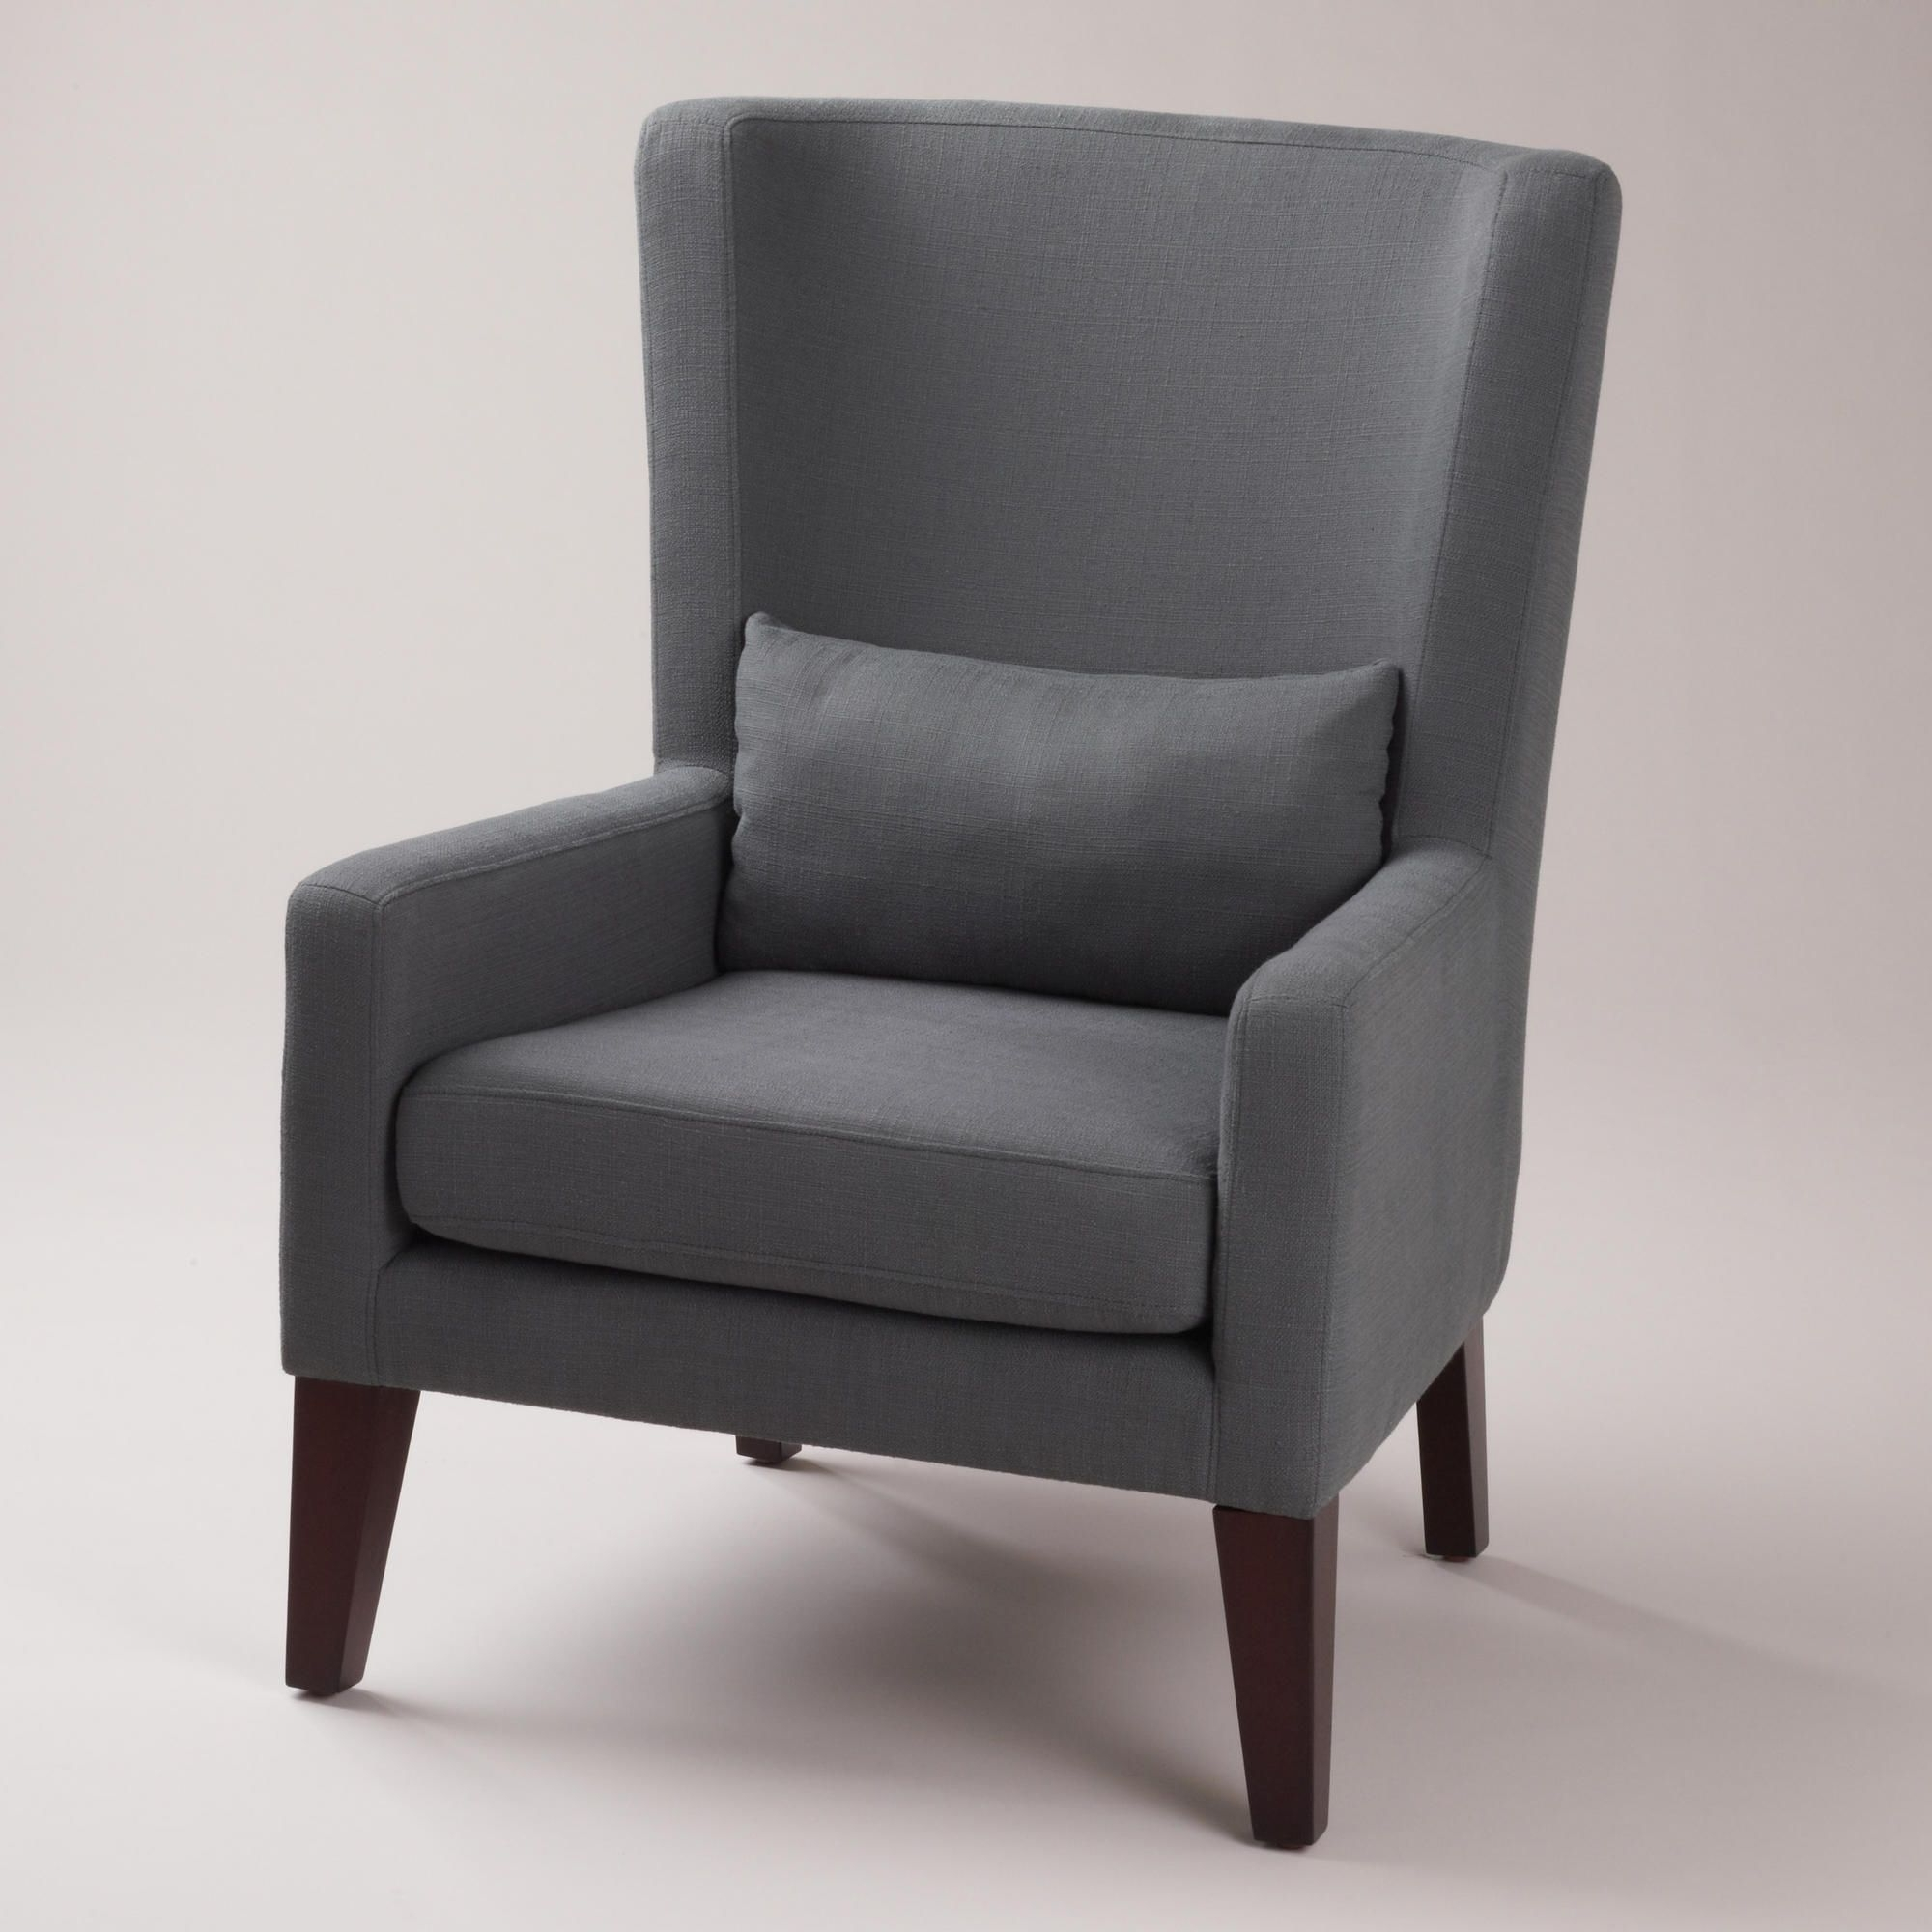 $349 (Comes In A Couple Of Colors) Dove Gray Triton High Back Within Well Liked Lindy Dove Grey Side Chairs (View 1 of 20)